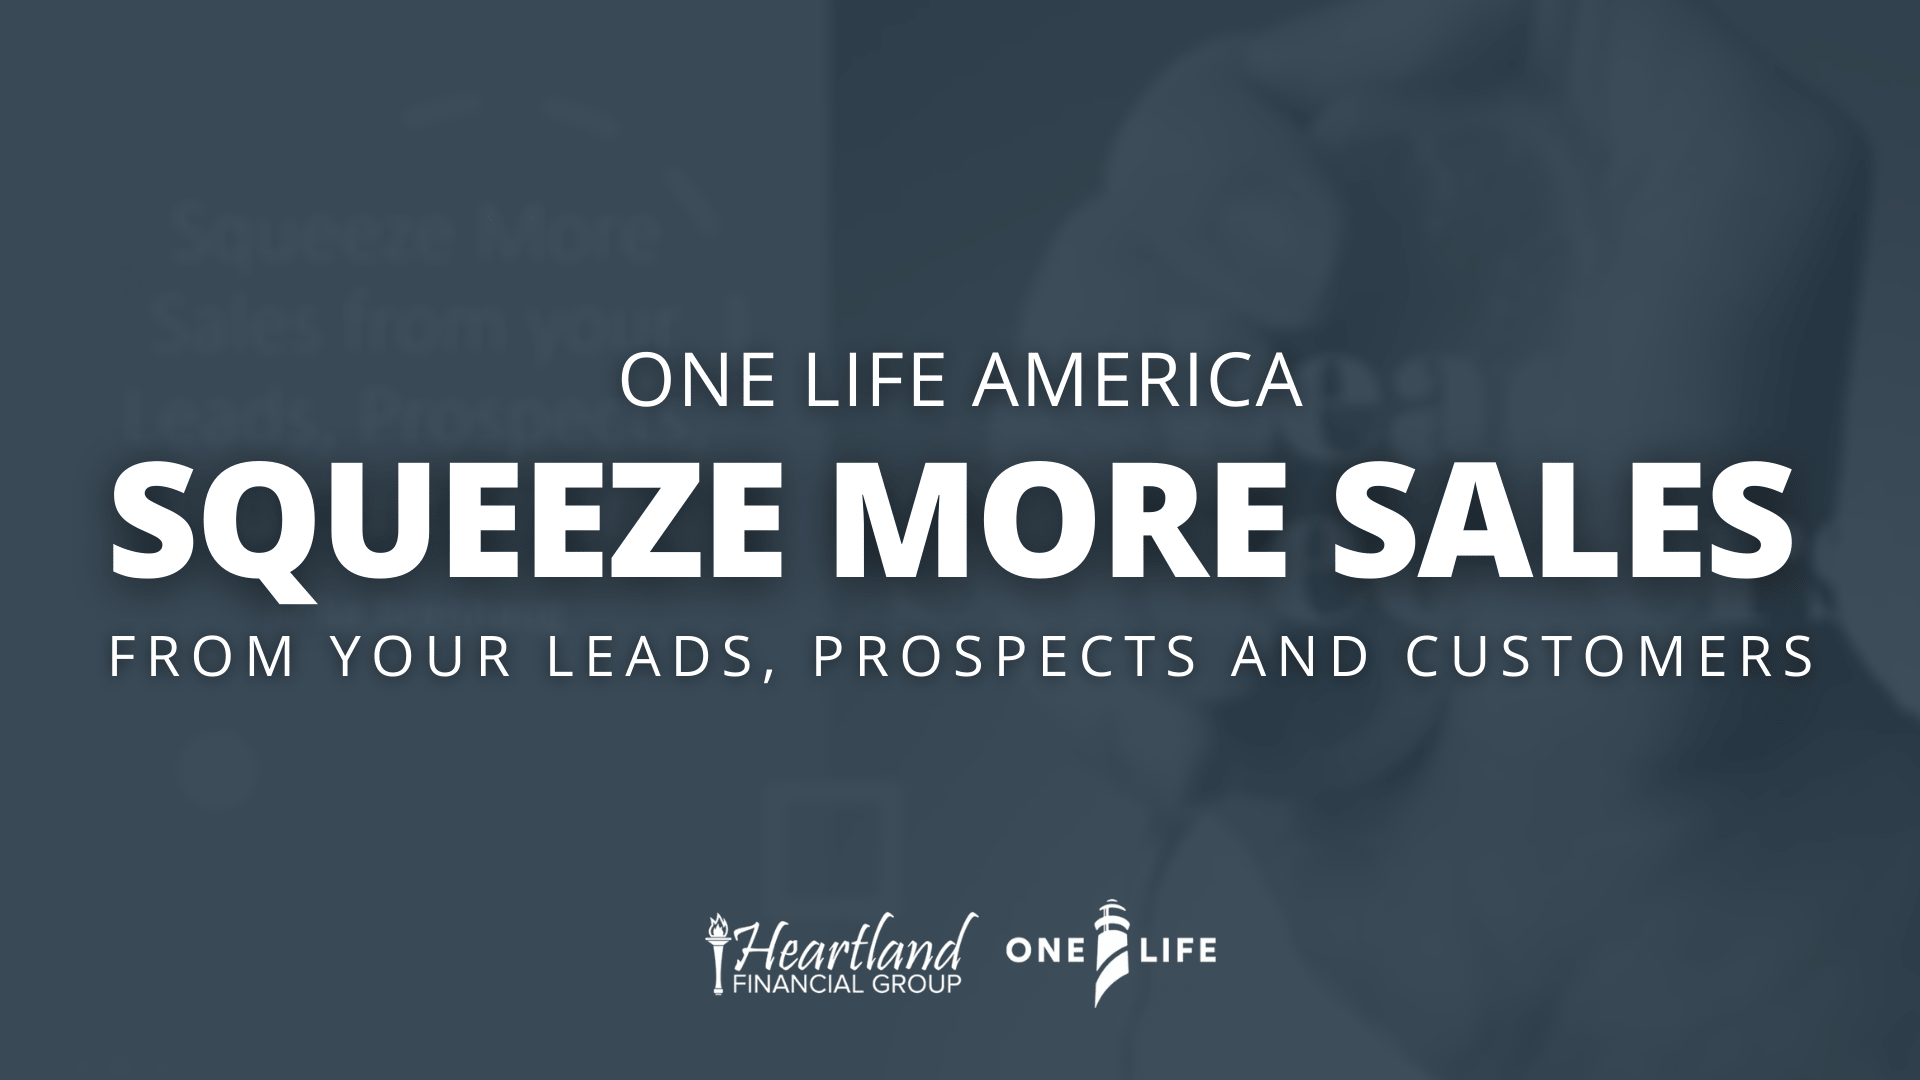 Squeeze More Sales From Your Leads, Prospects and Customers